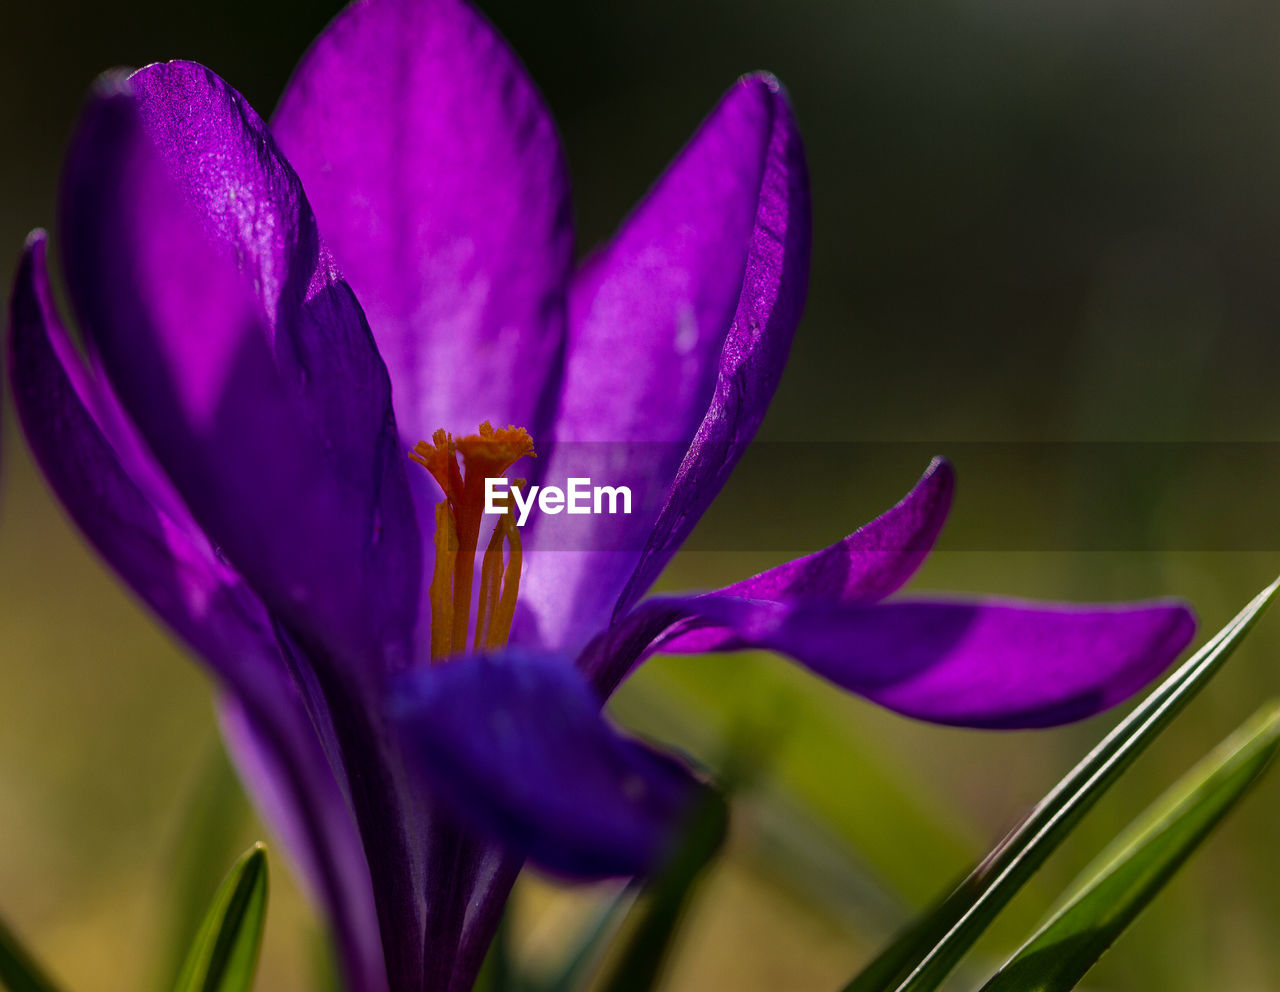 flower, petal, fragility, purple, beauty in nature, nature, flower head, growth, freshness, close-up, no people, plant, blooming, day, outdoors, crocus